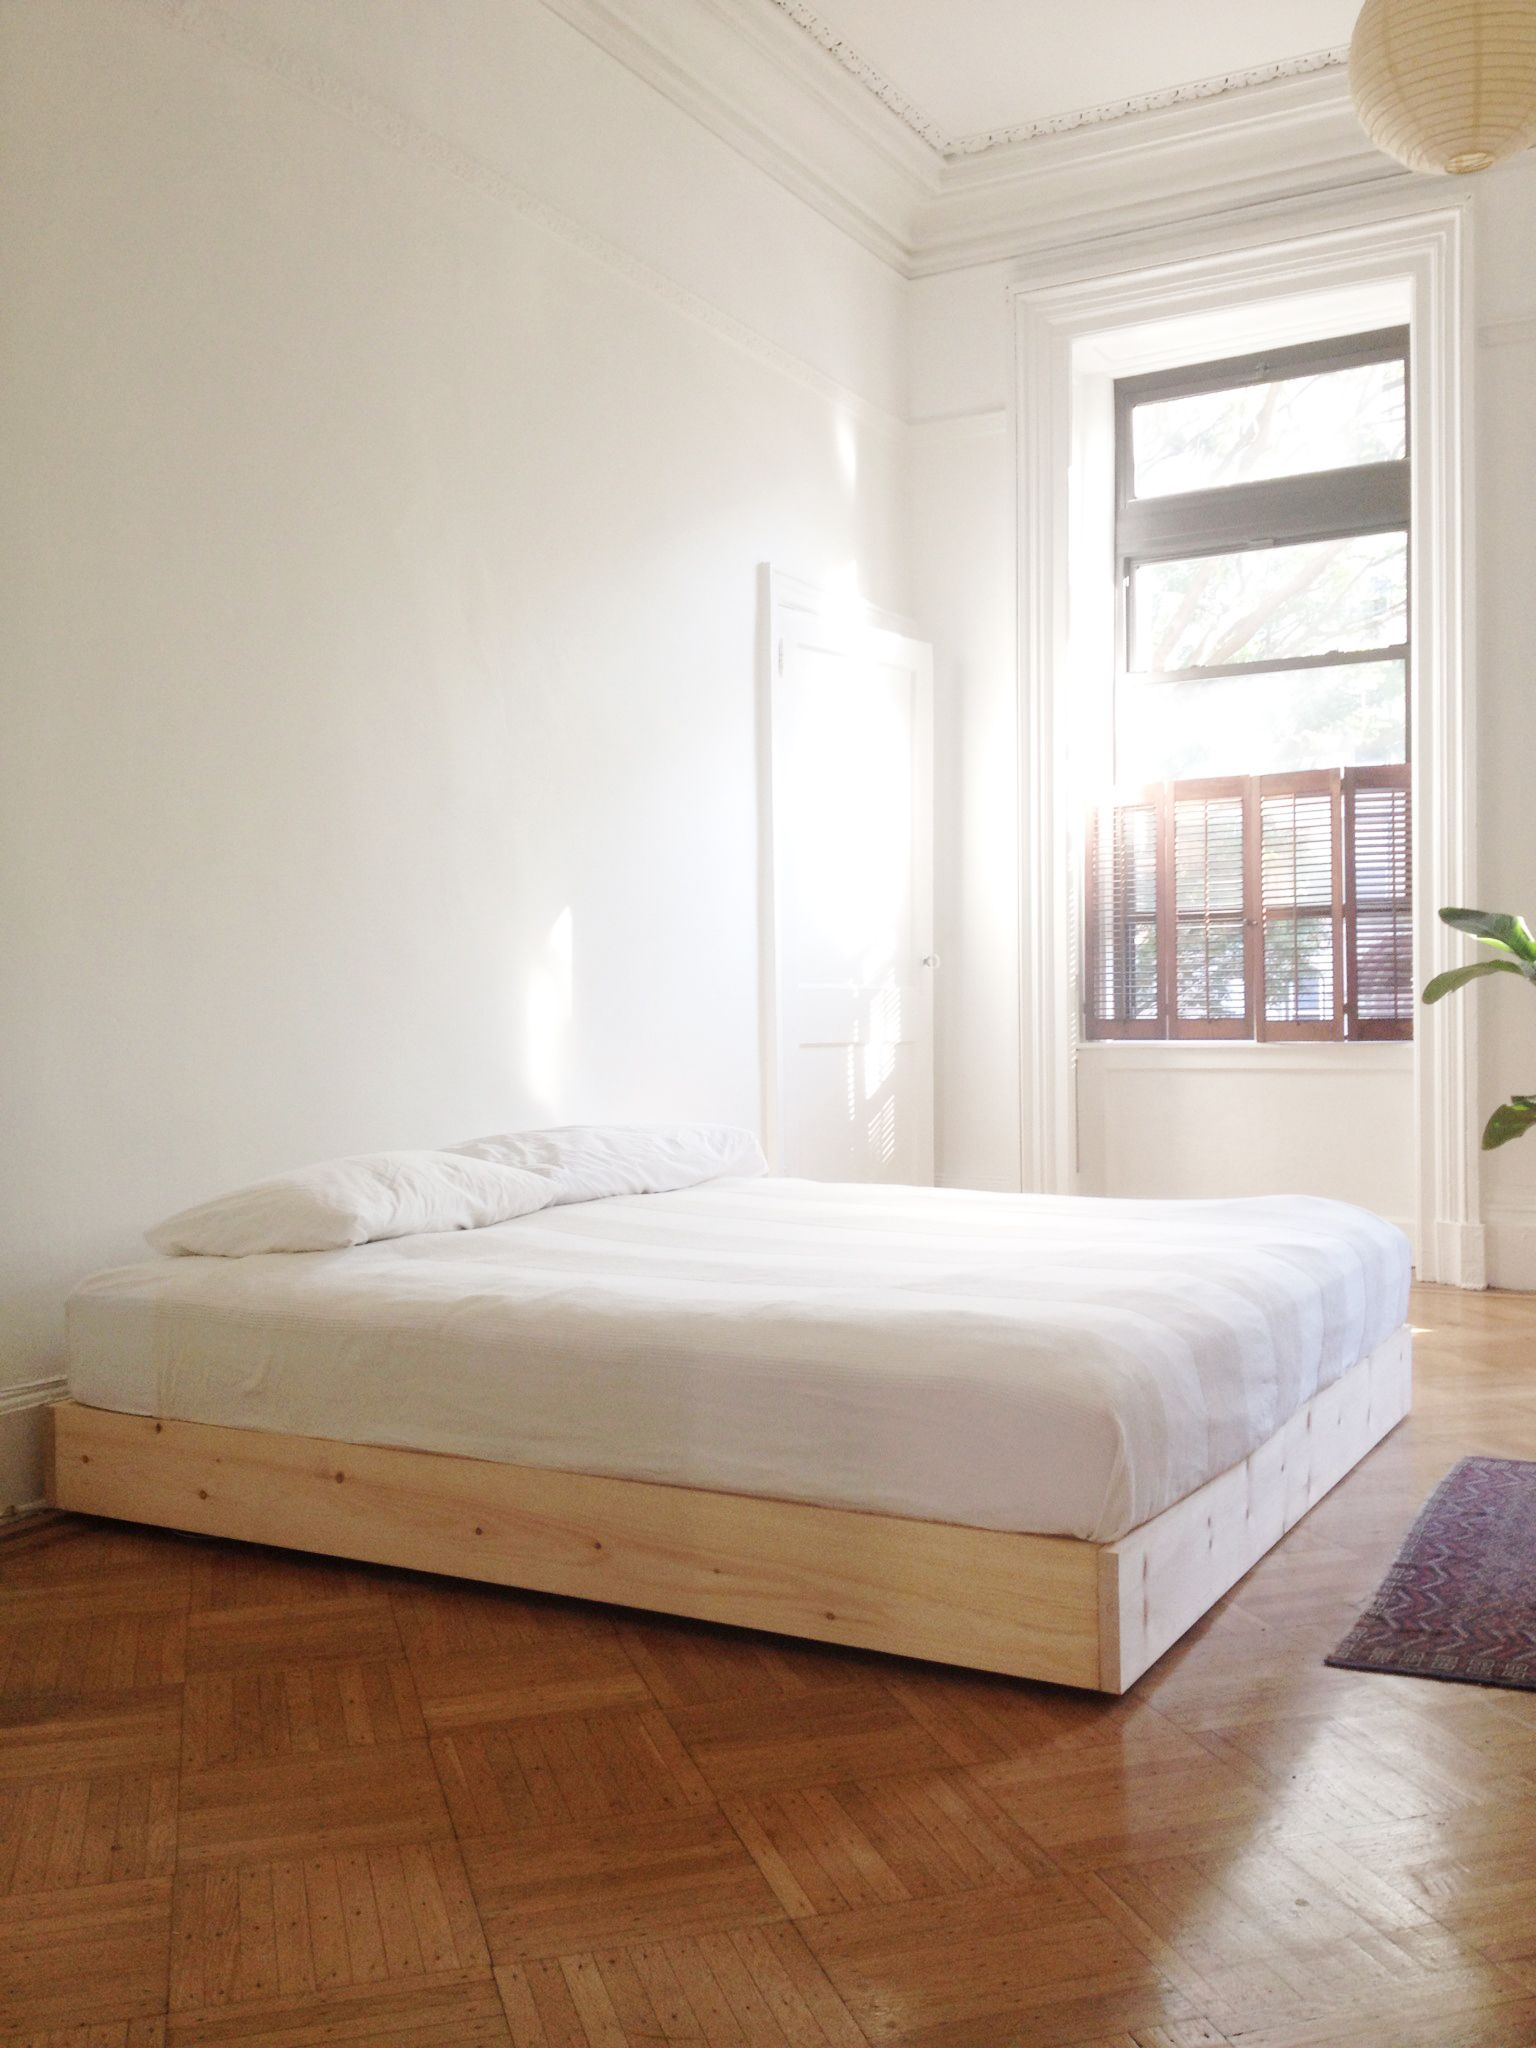 Diy Minimalist Bed Frame My Floating Diy Platform Bed In Unfinished Pine Although I Am